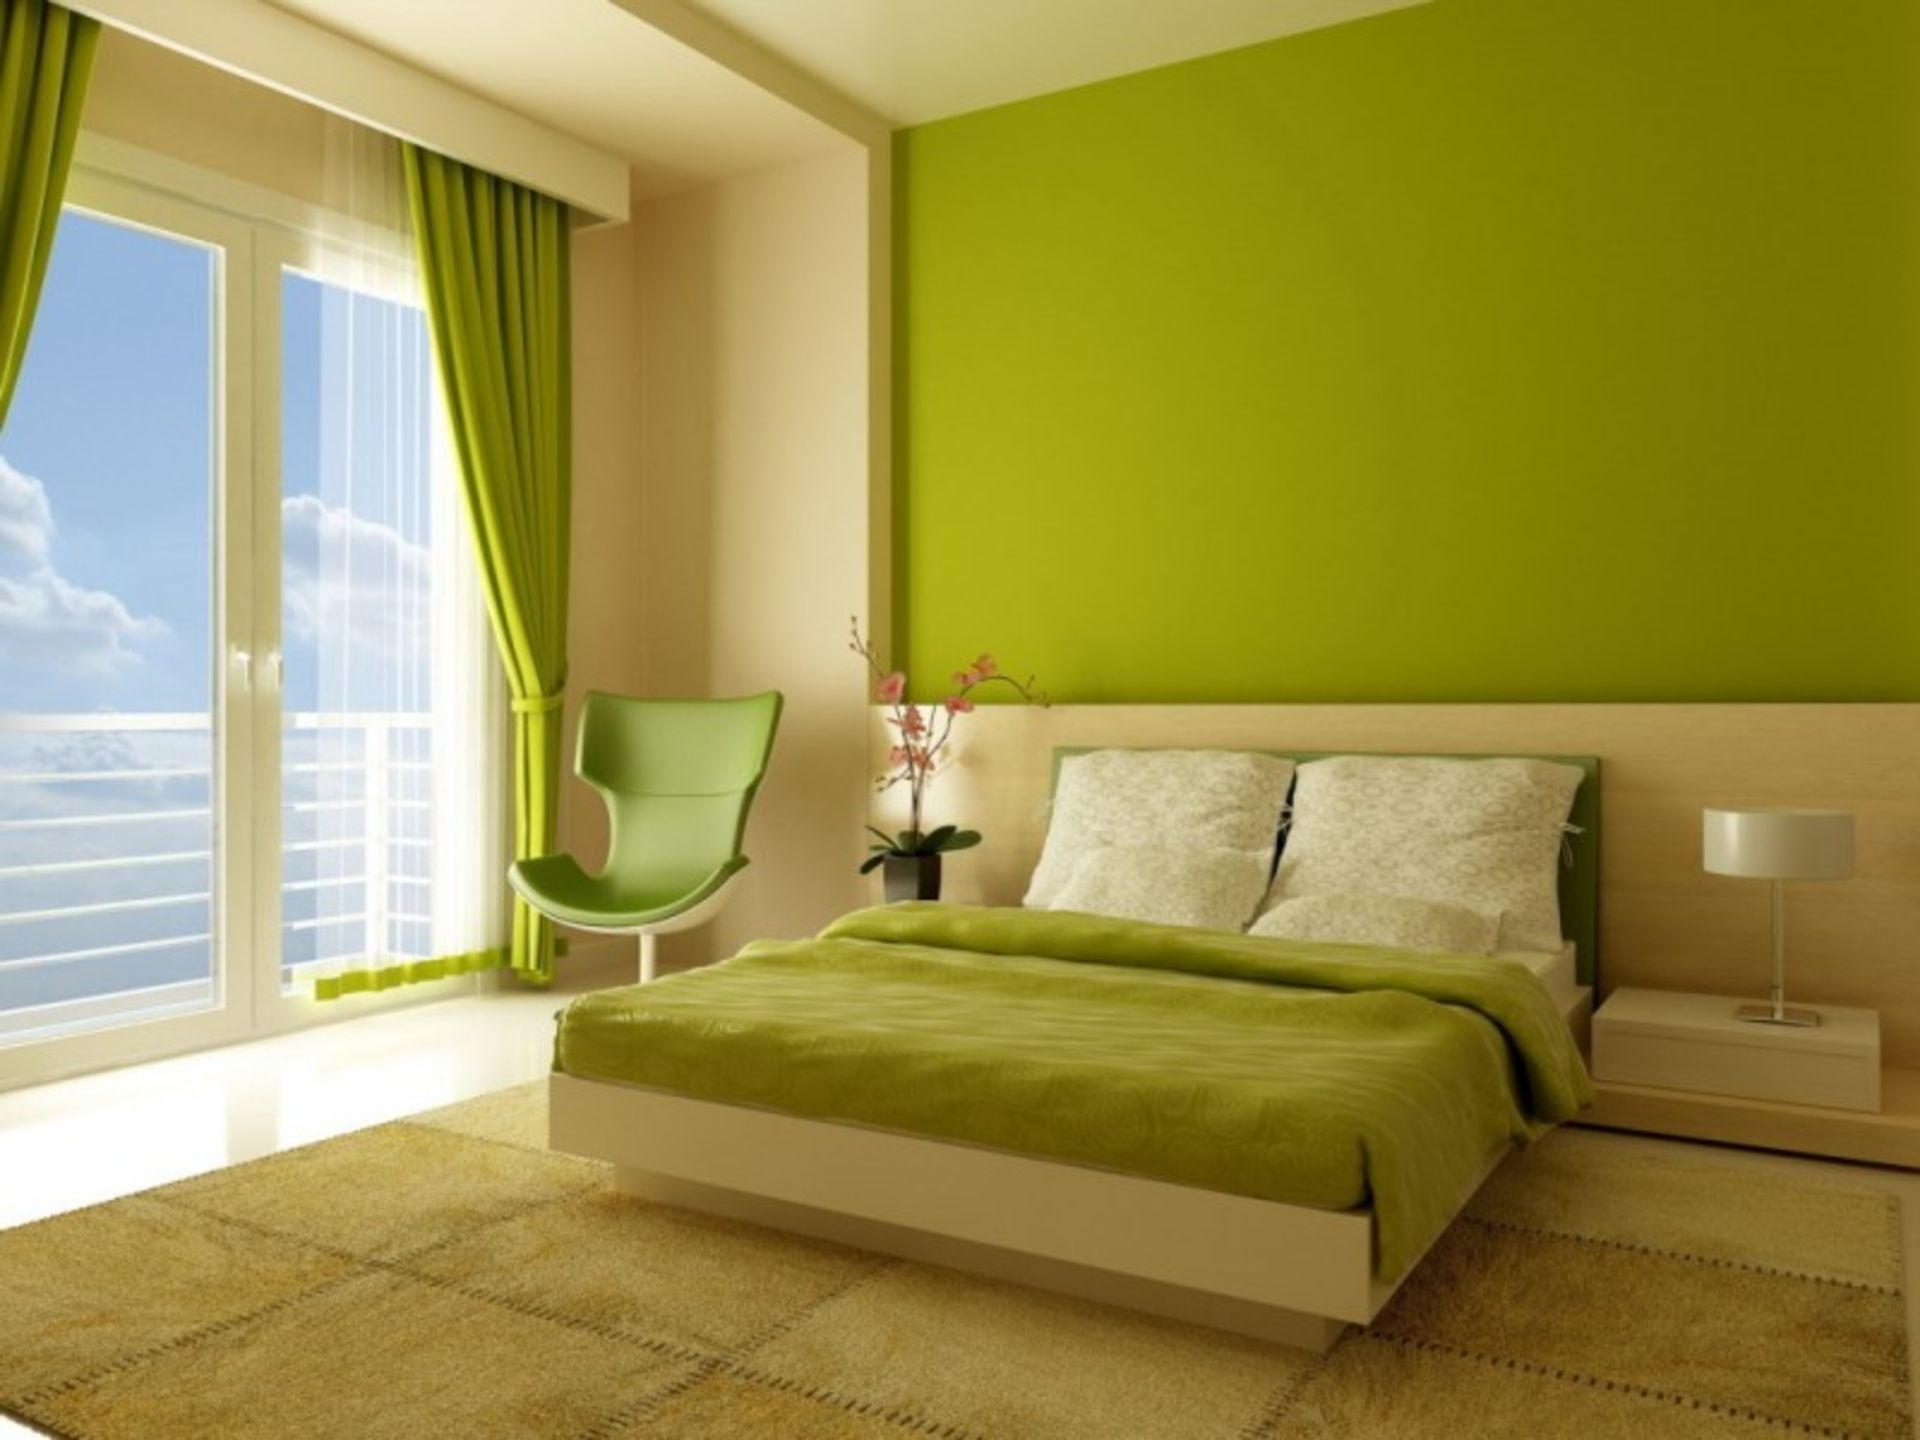 Green bedroom curtains - Furniture Lime Green Floral Curtain Fabric Design For Modern Minimalist Living Room With Lime Green Area Rugs Over Modern White Coffee Table Also With